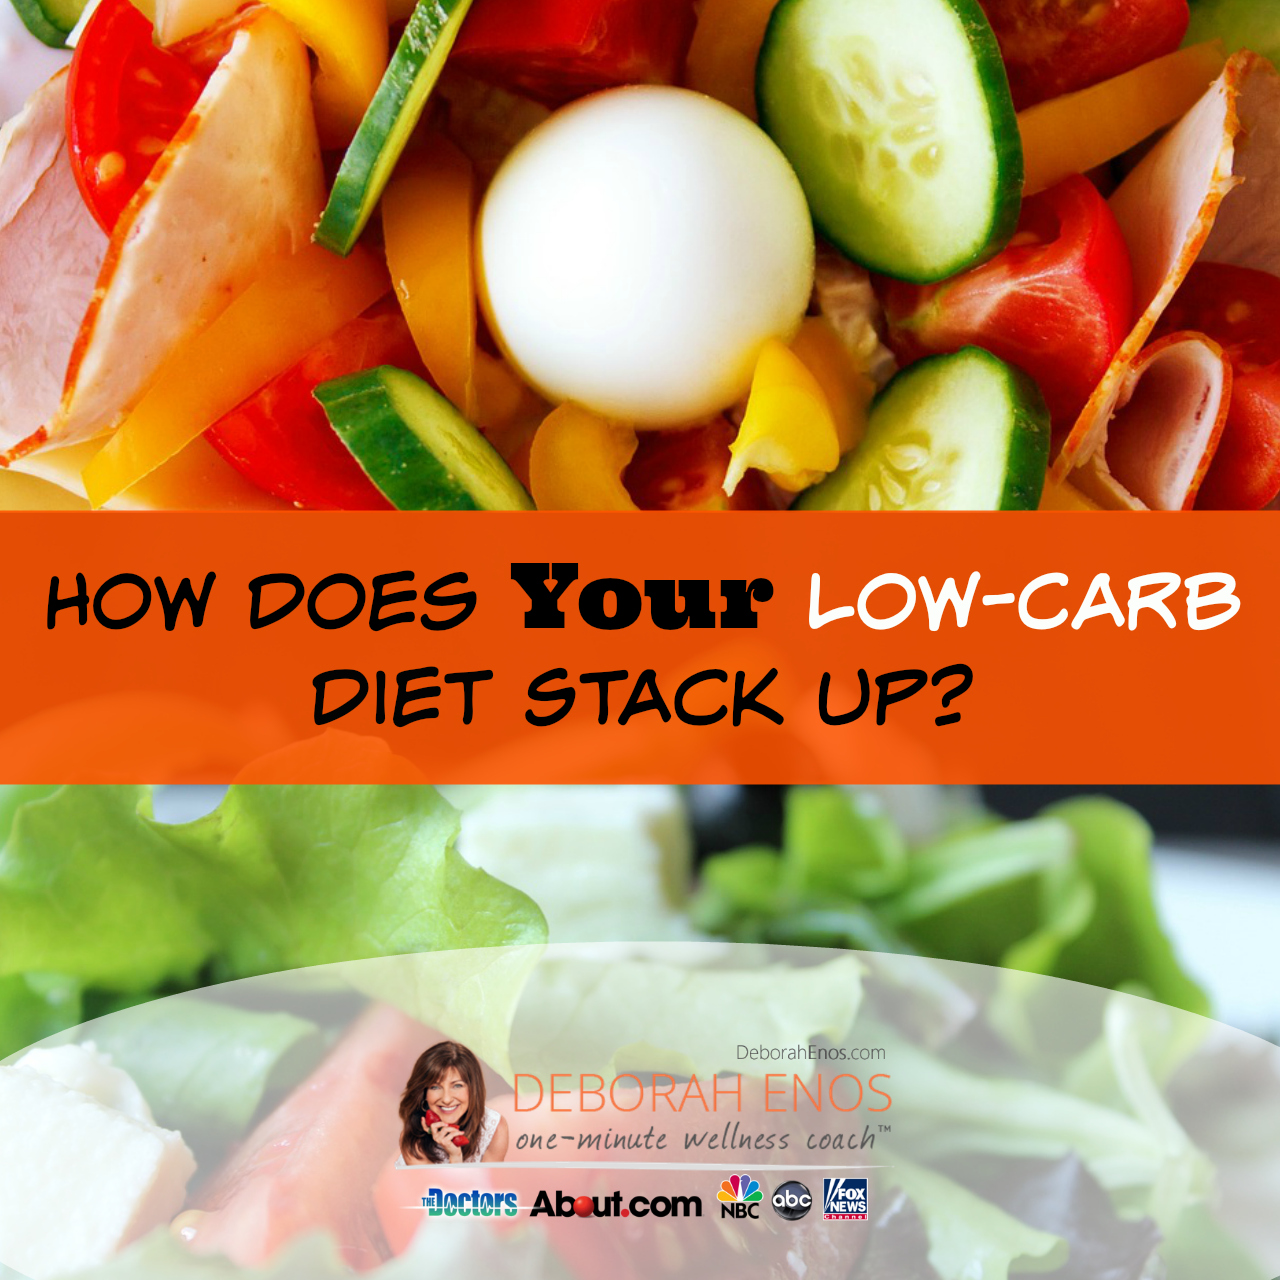 how does your low-carb diet stack up